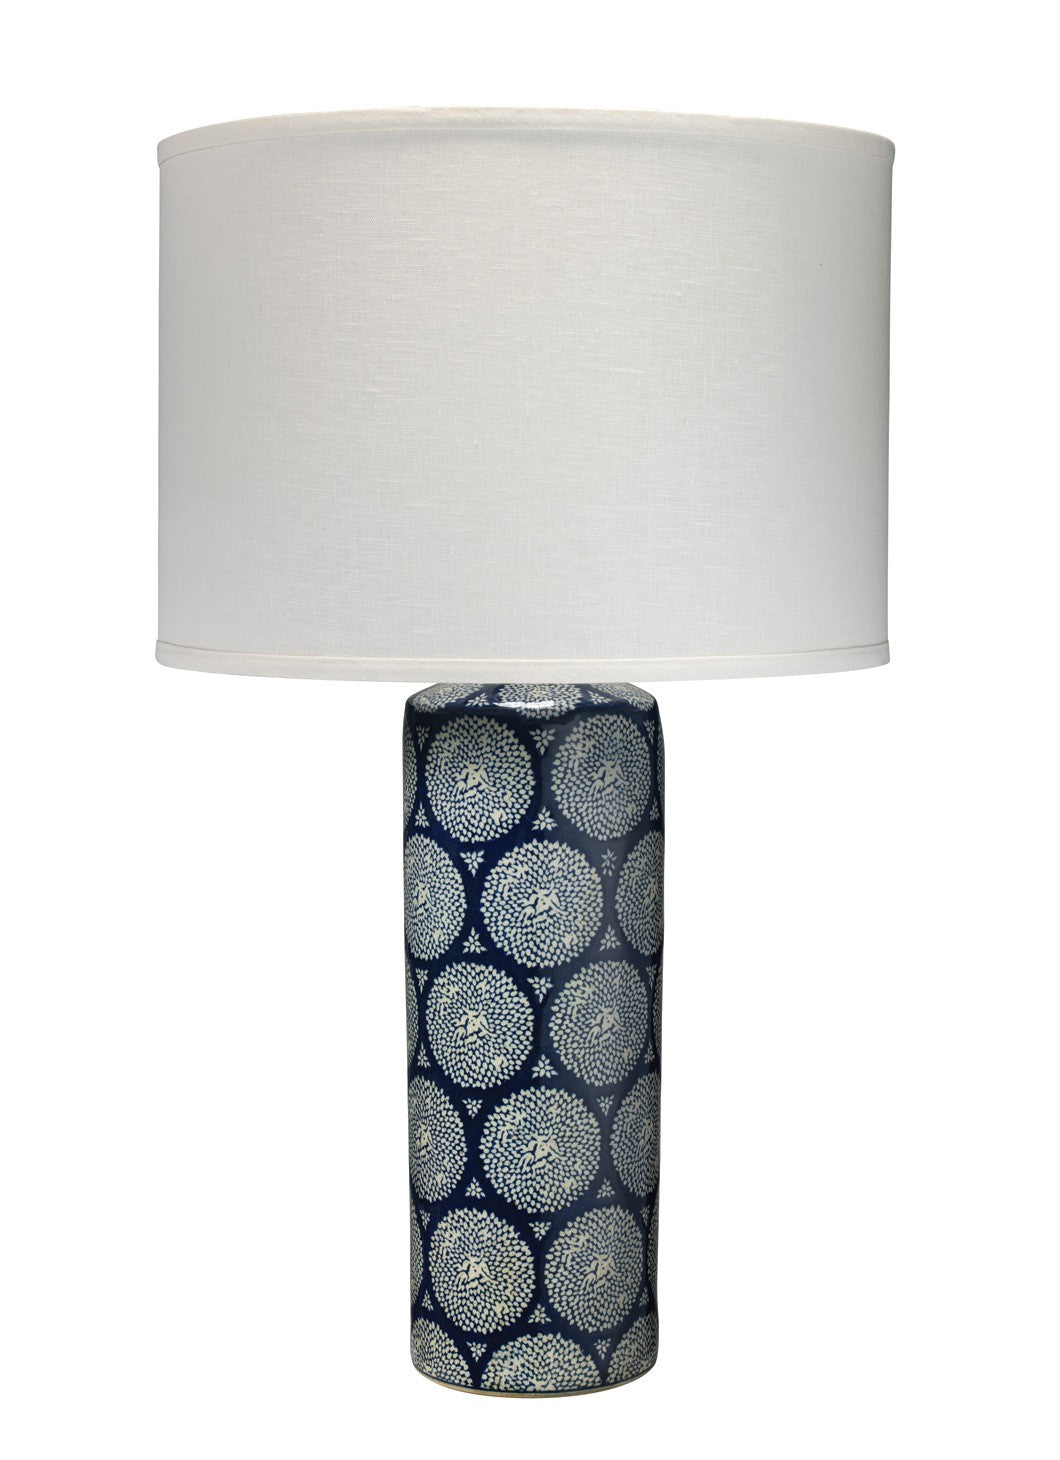 Jamie Young Neva Table Lamp and Shade